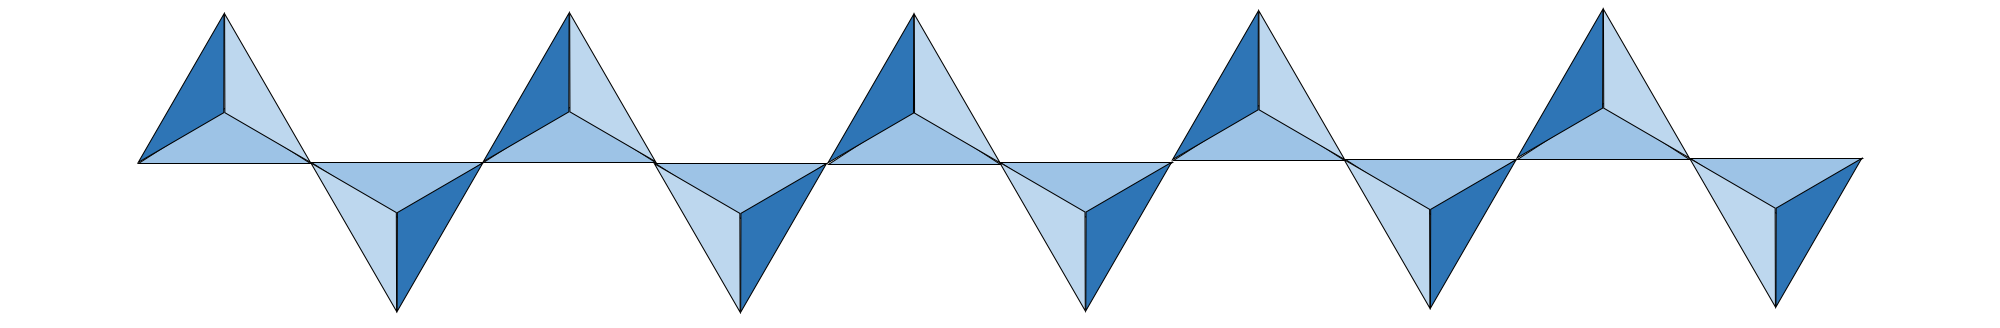 Illustration of a single chain of silicate tetrahedra.